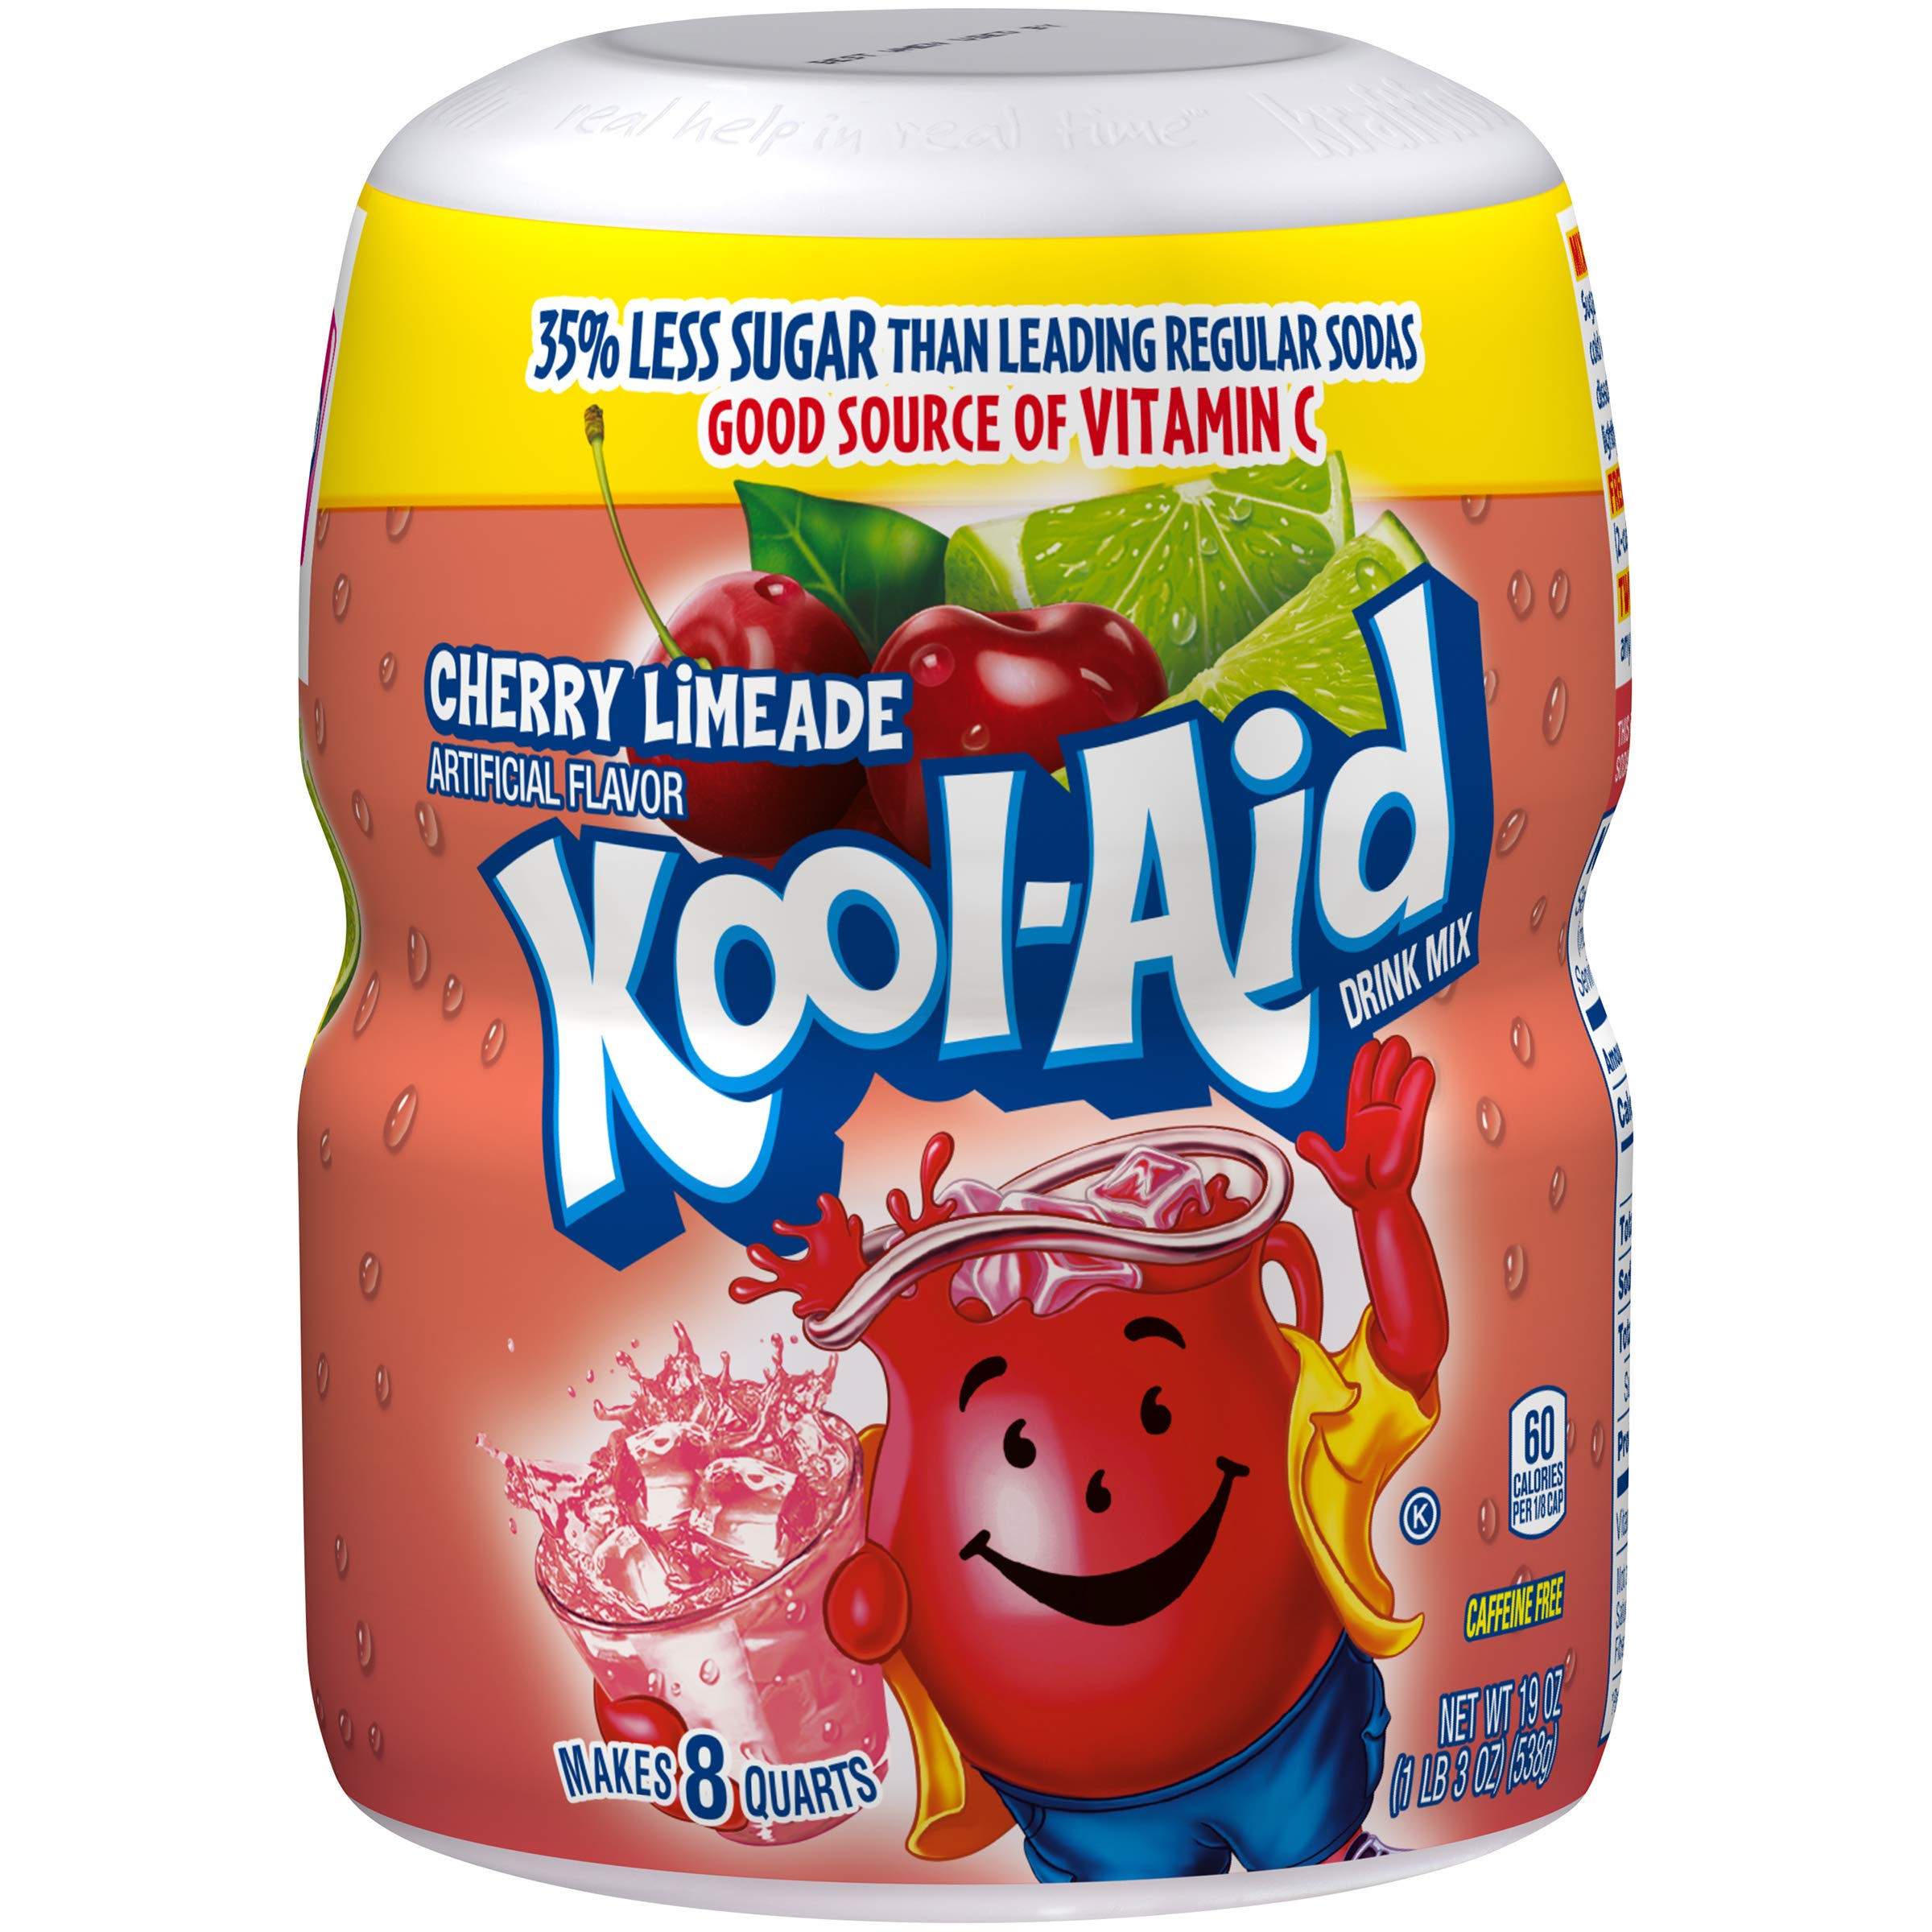 Kool Aid Cherry Limeade Drink Mix (19 oz Canister, Pack of 12) by Kool-Aid